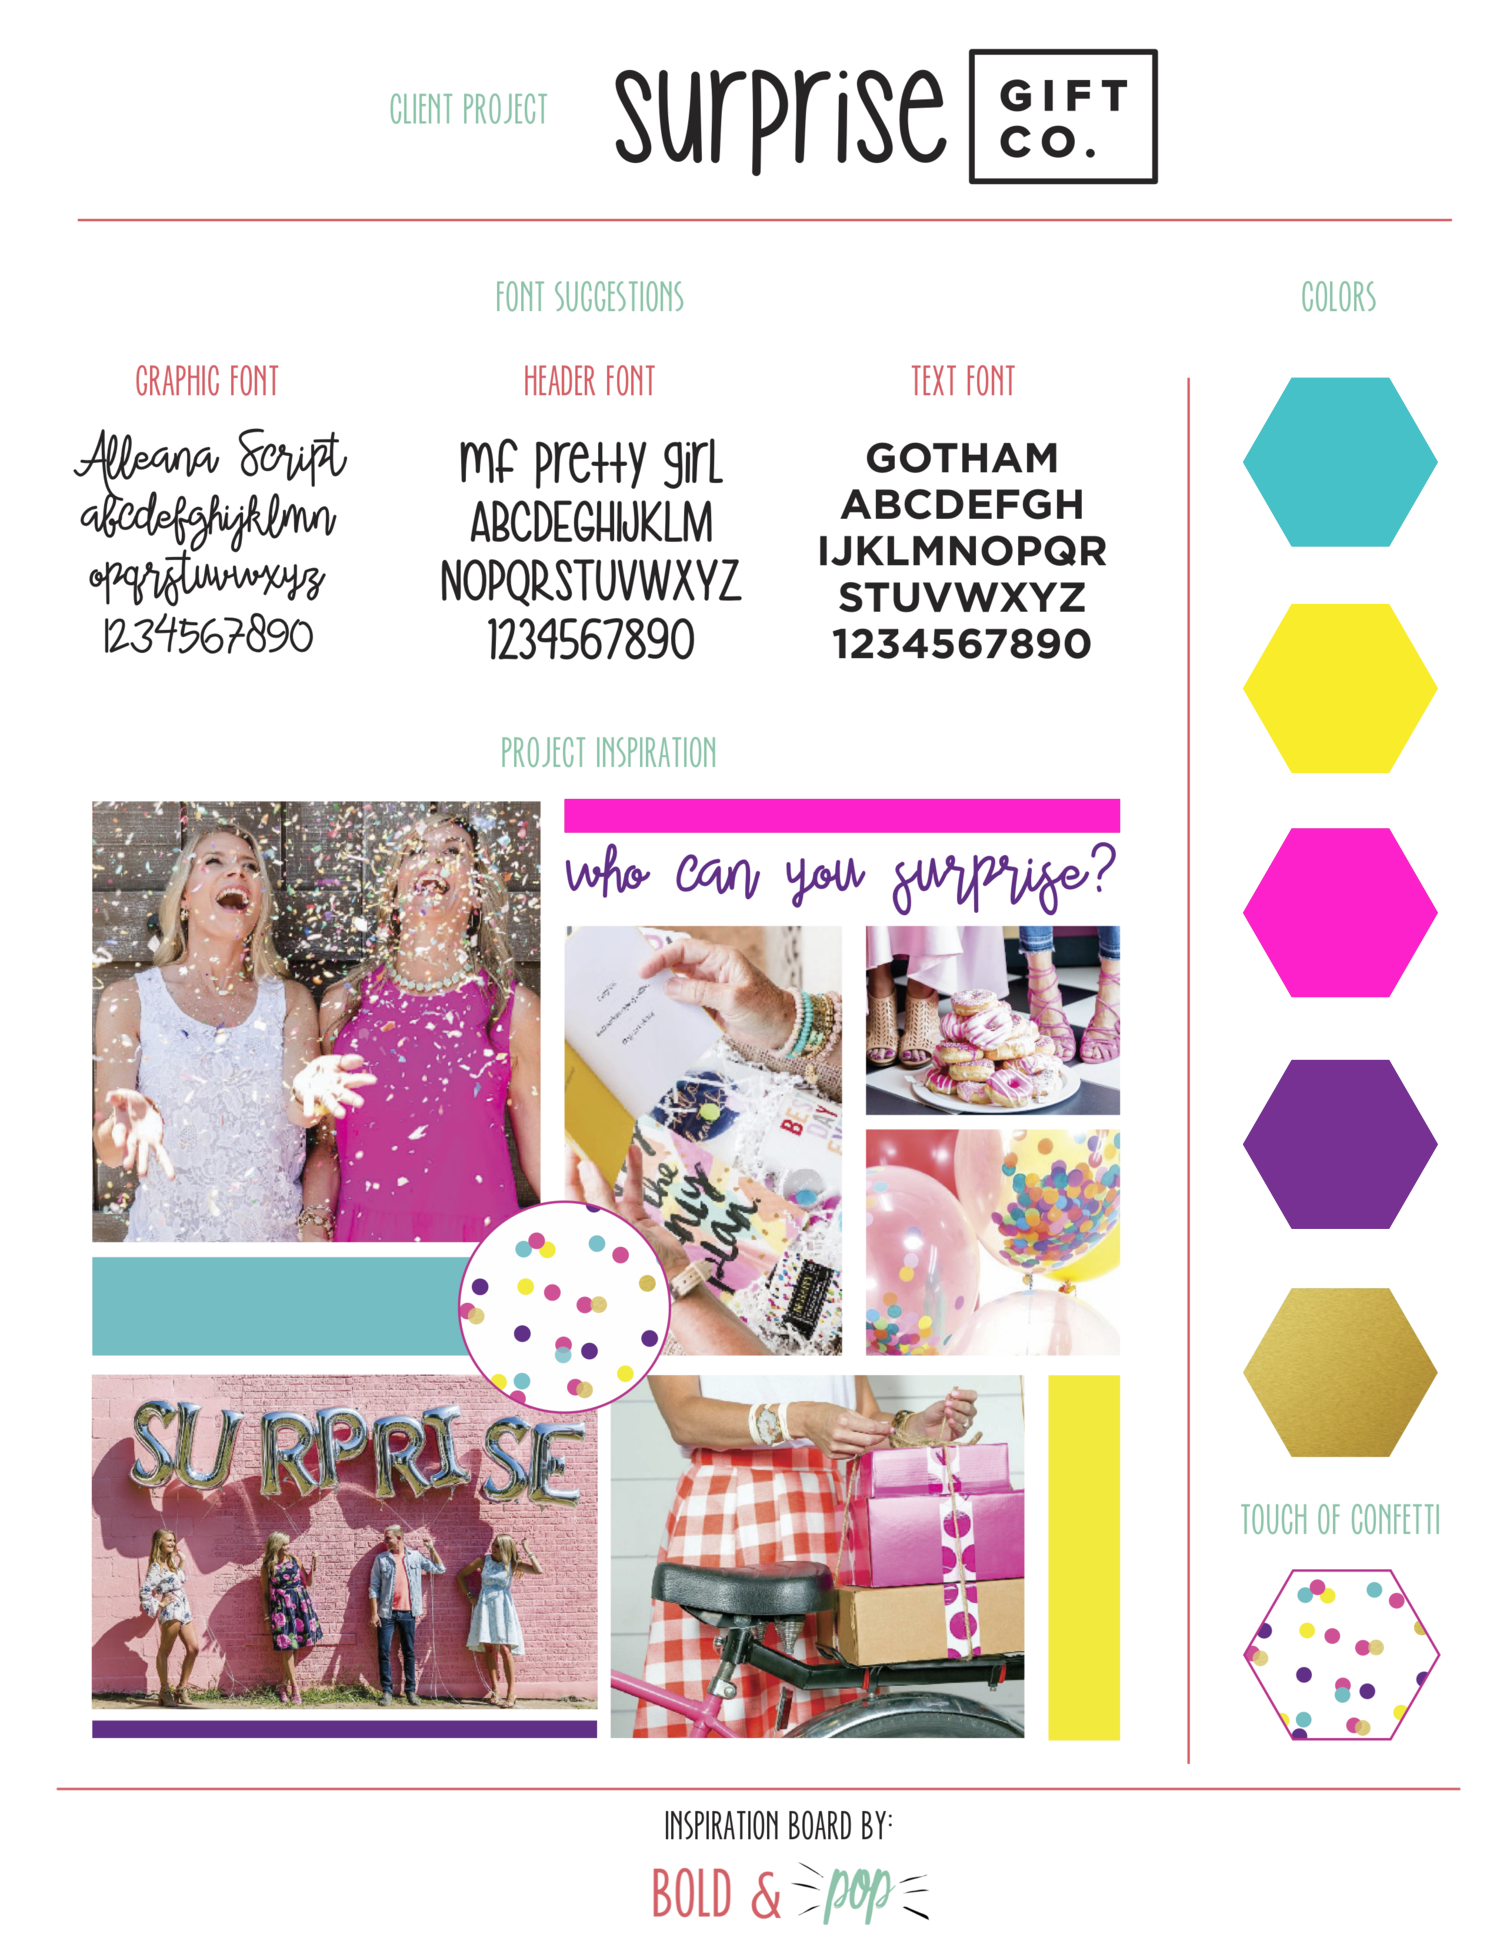 Bold & Pop : Surprise Gift Co. Squarespace Website Refresh